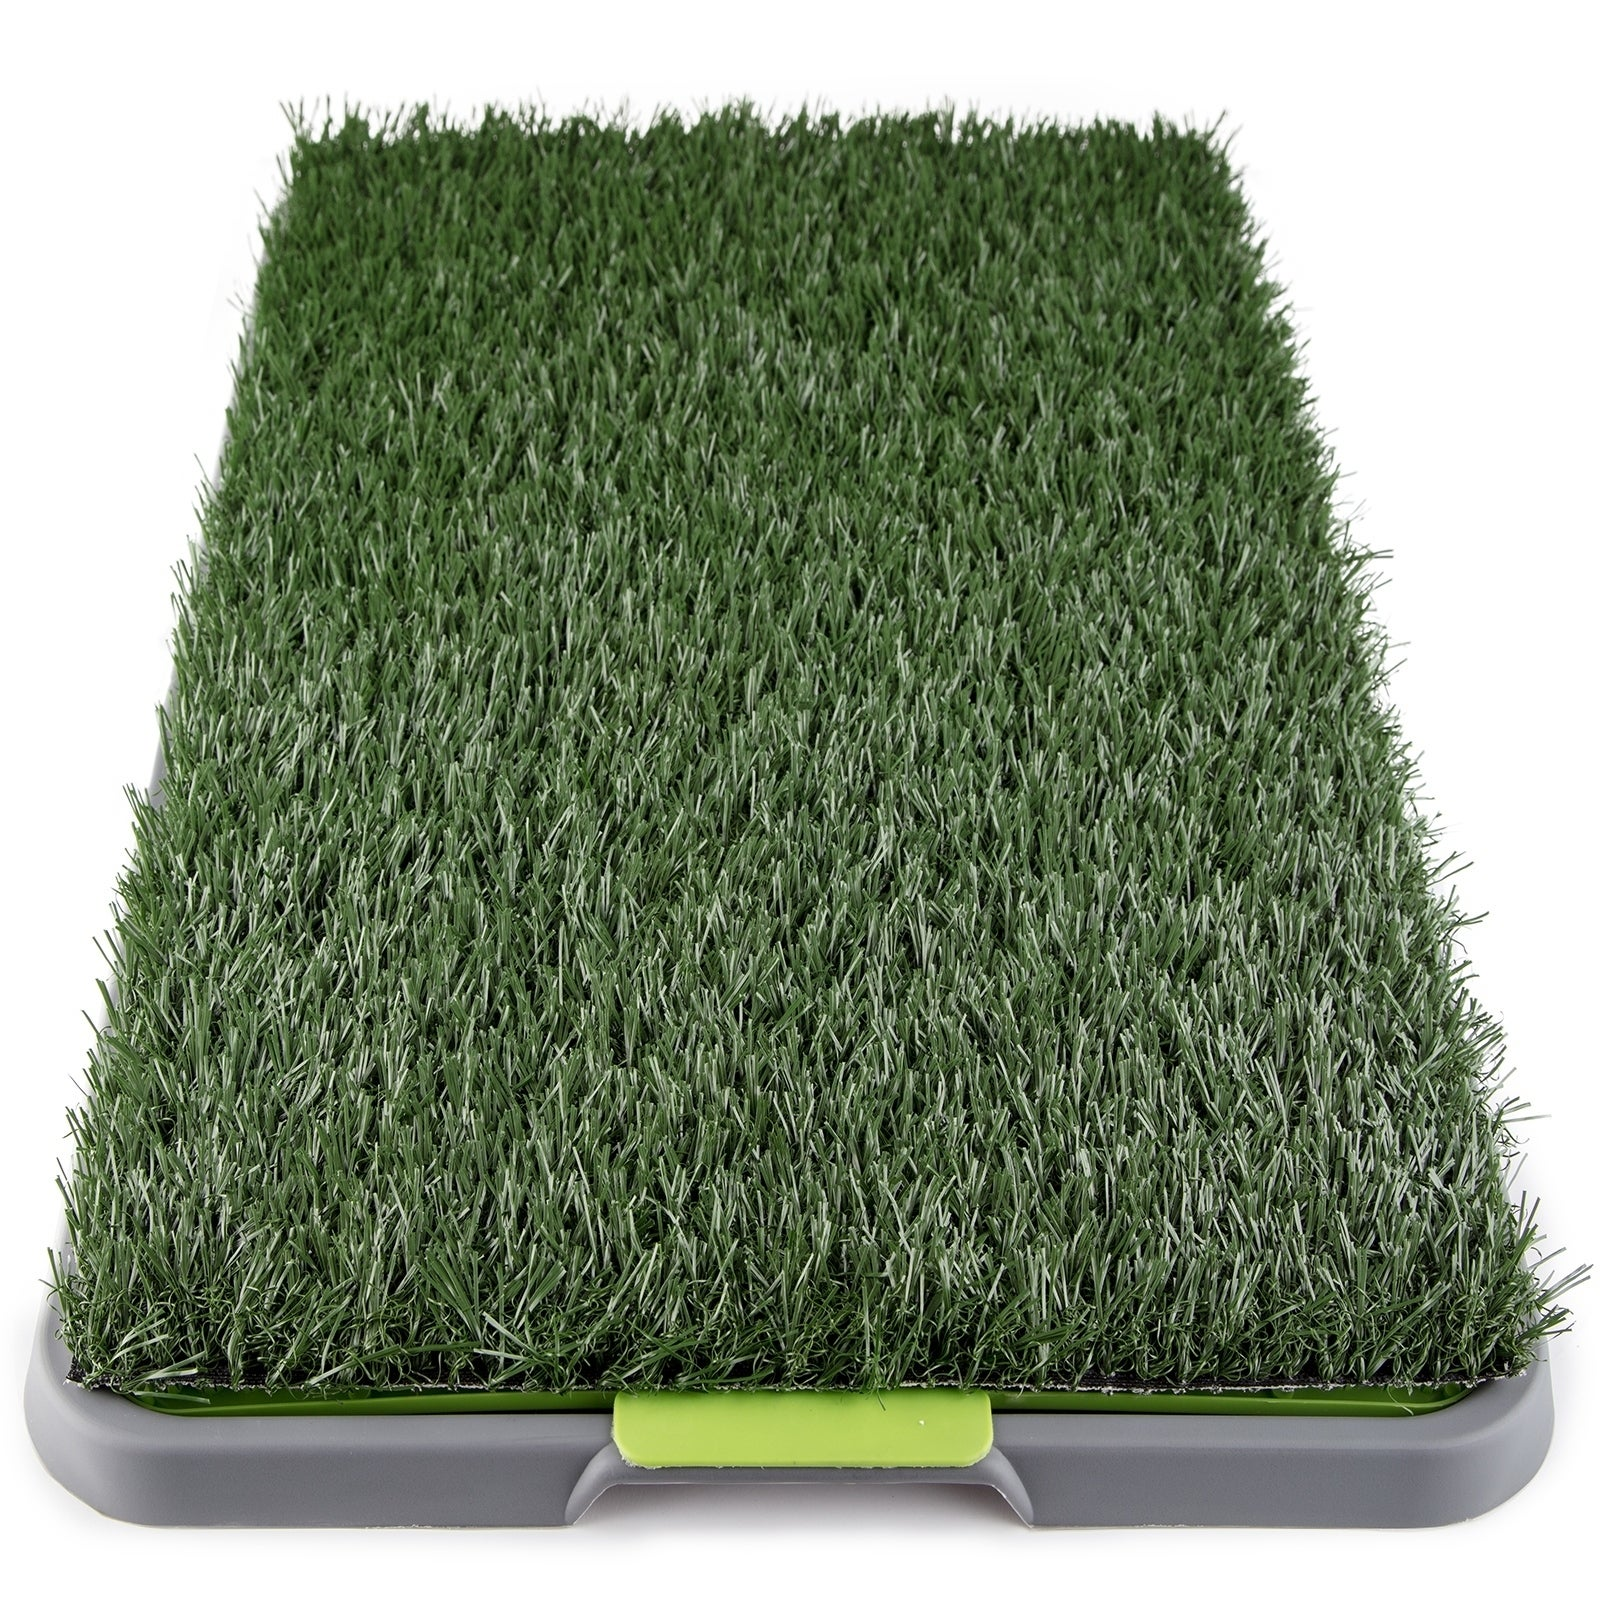 Paws & Pals Pet Potty Training Synthetic Grass (Green) Pe...